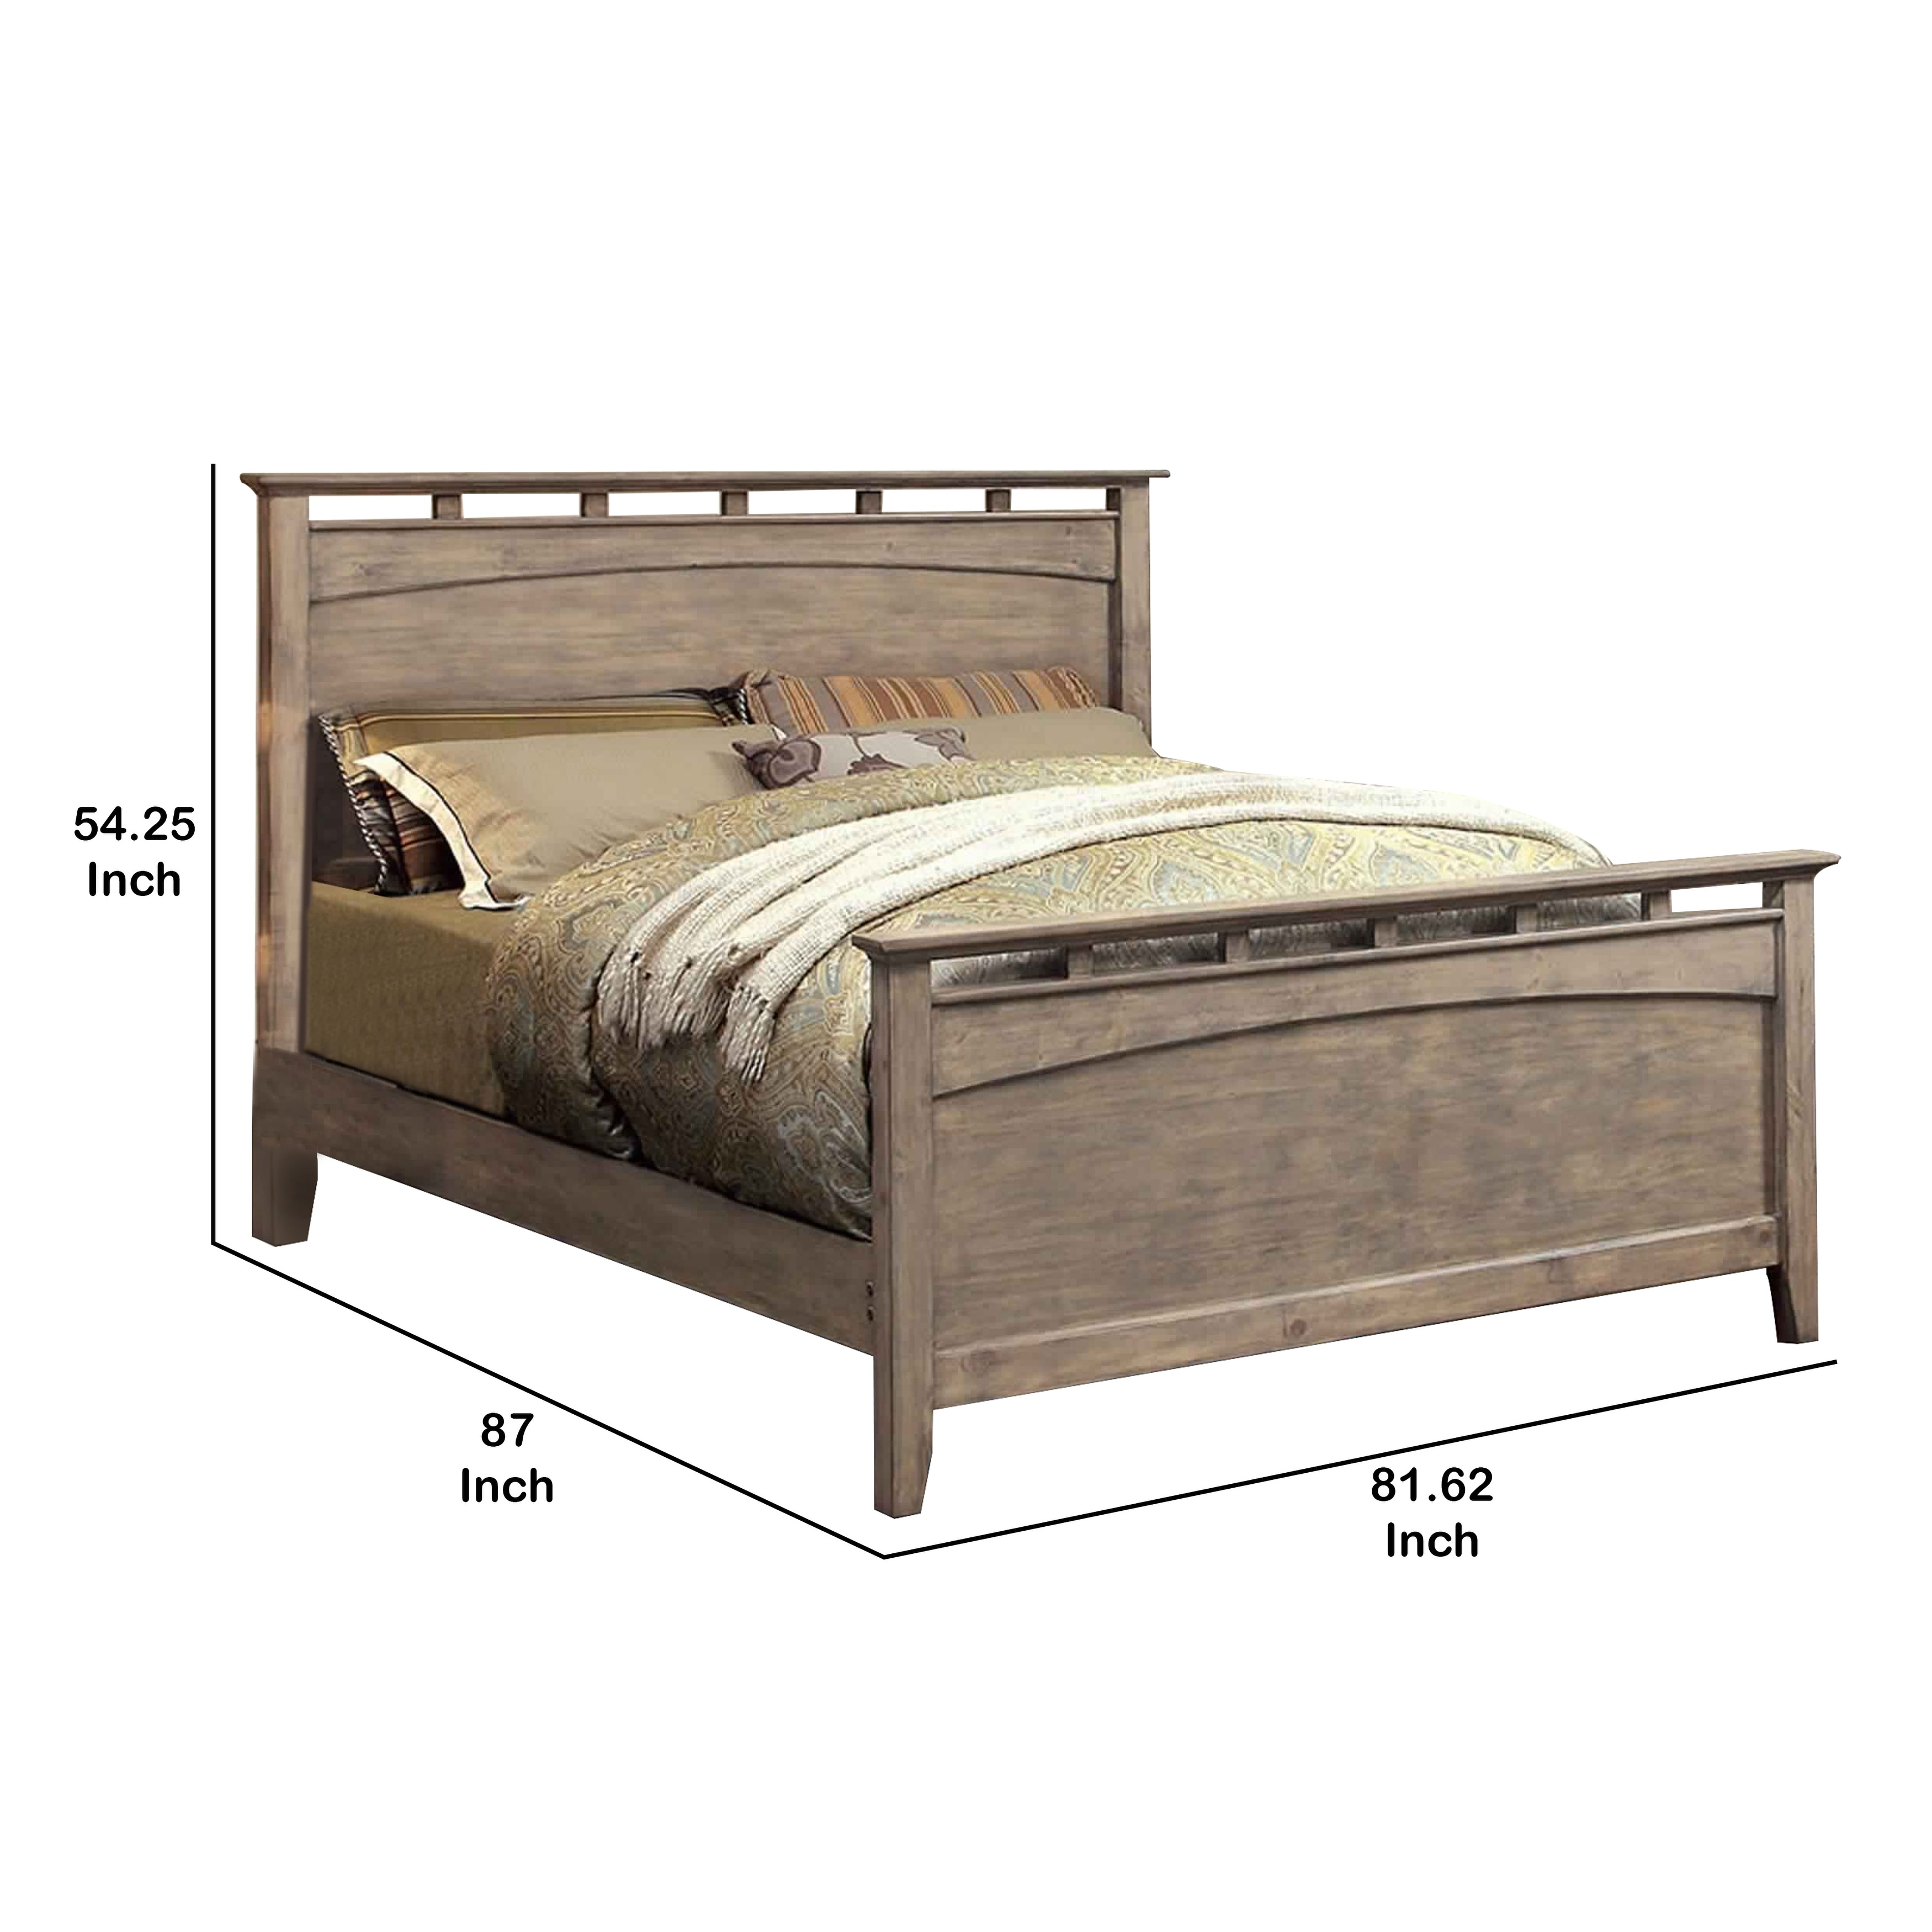 Eastern King Size Wooden Bed With Rectangular Headboard And Footboard Gray On Sale Overstock 31304725